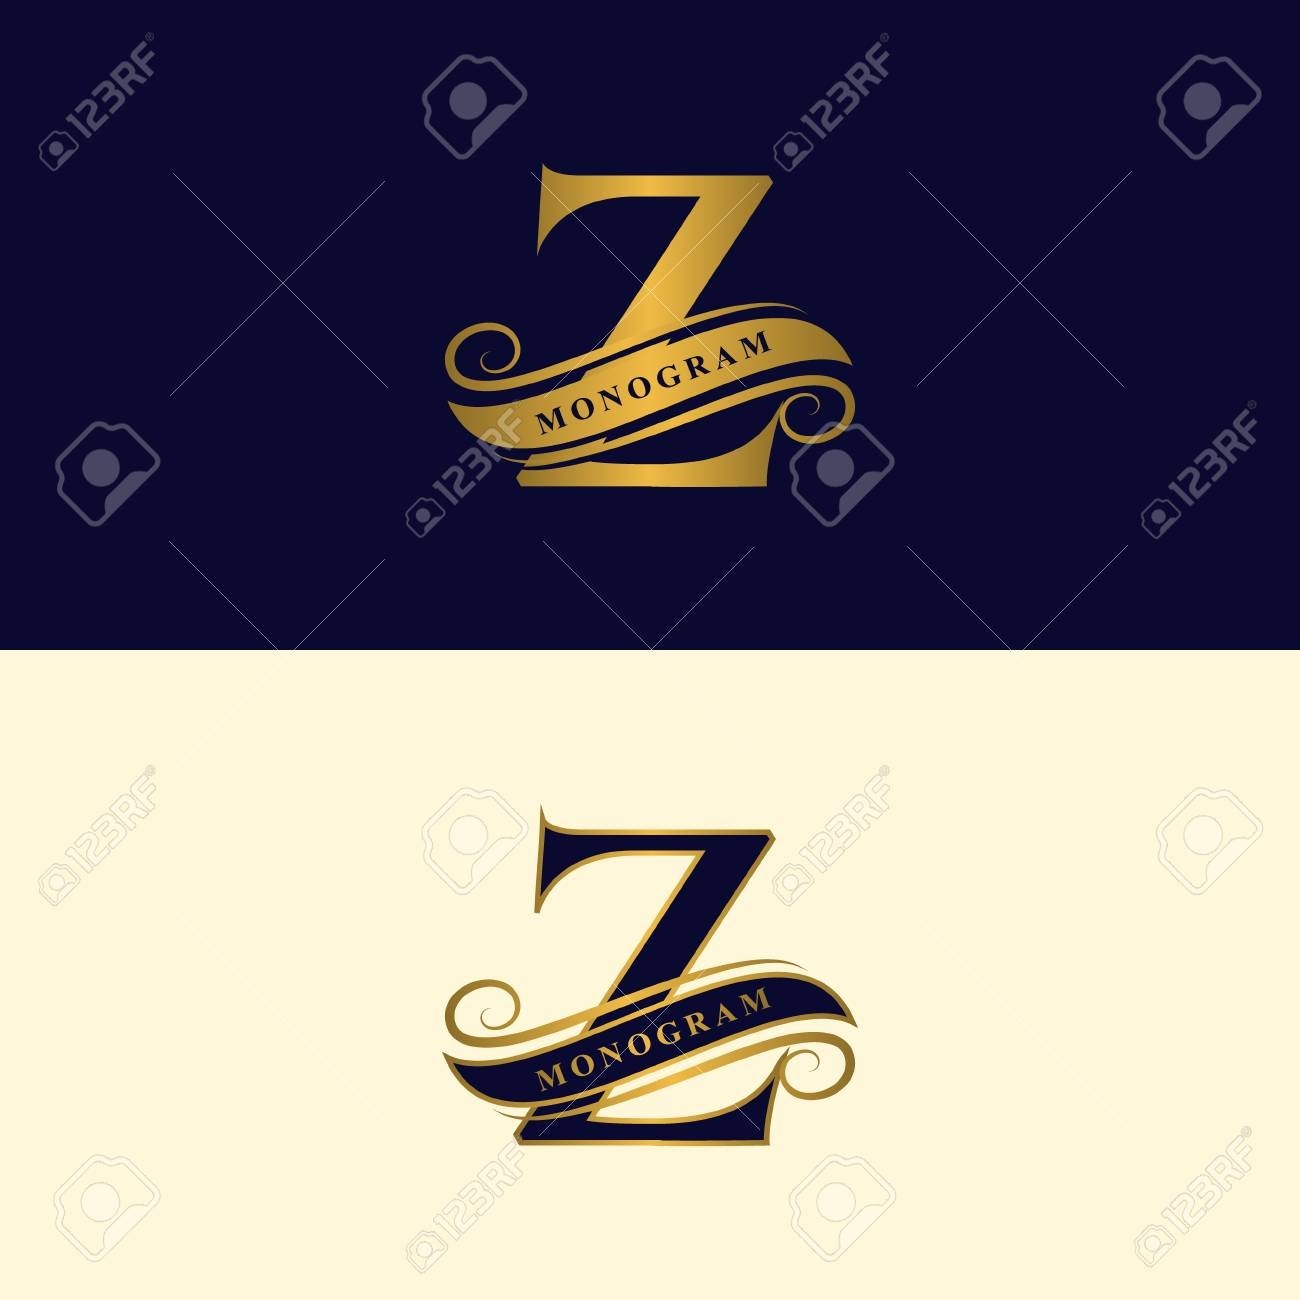 Gold Letter Z Calligraphic Beautiful Logo With Tape For Labels Graceful Style Vintage